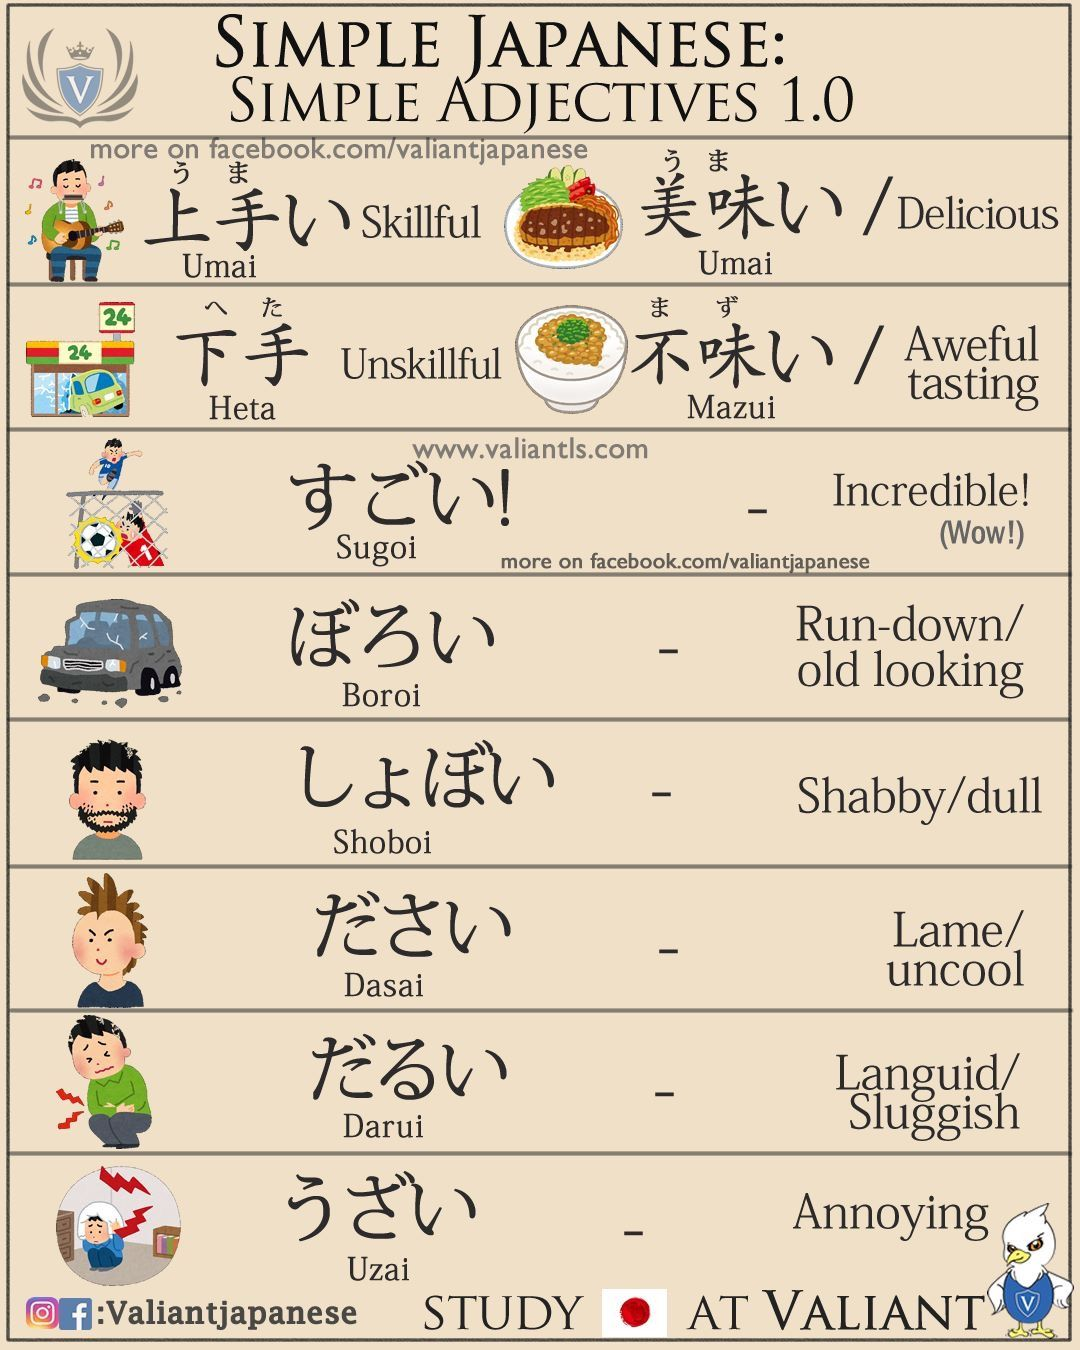 Simple Japanese Simple Adjectives 1 0